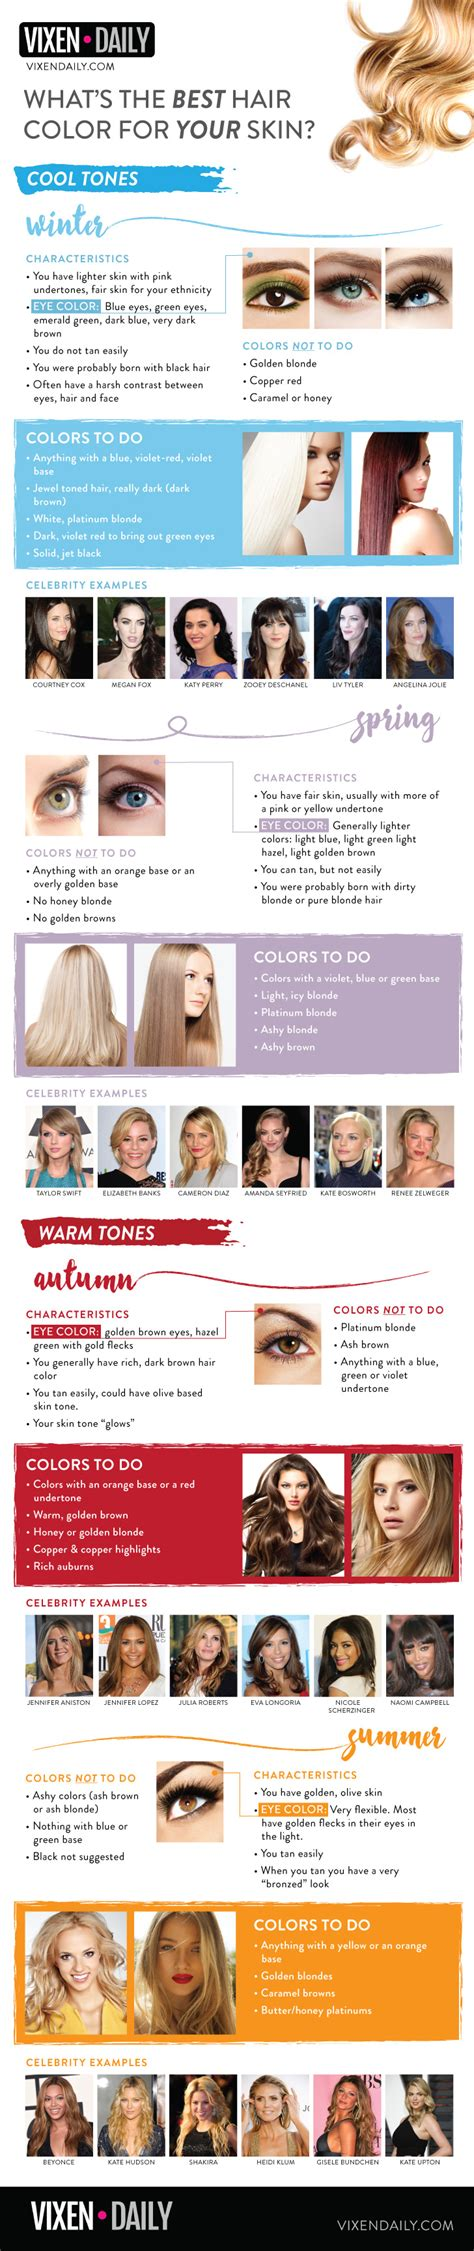 whats the best hair color when in the forty what s the best hair color for your skin daily infographic